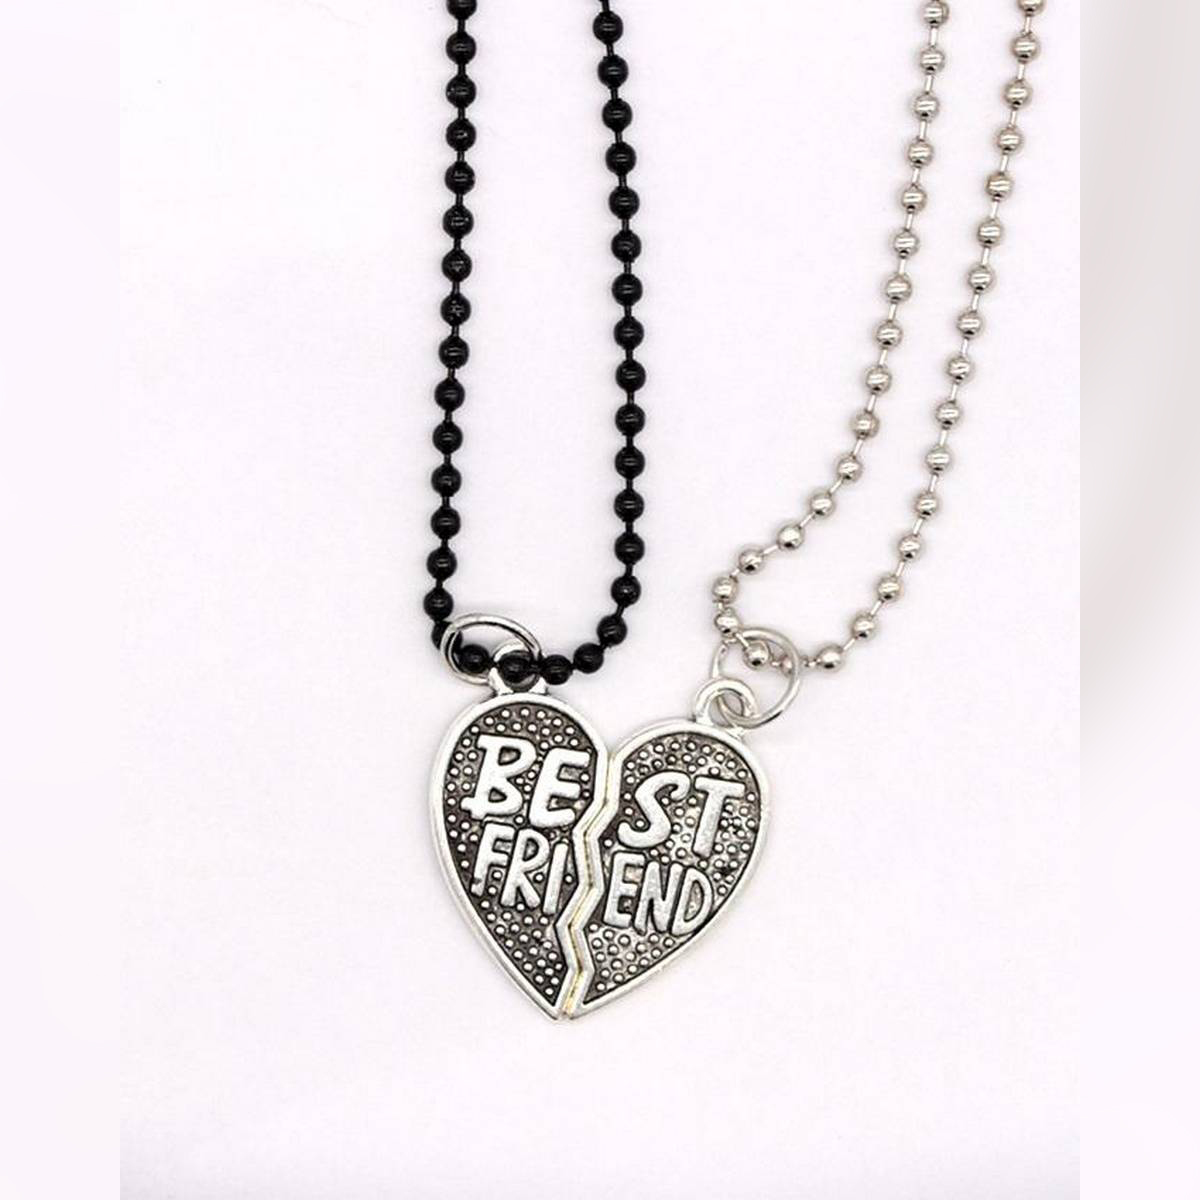 Charming best Friend Heart-shaped necklace - Silver